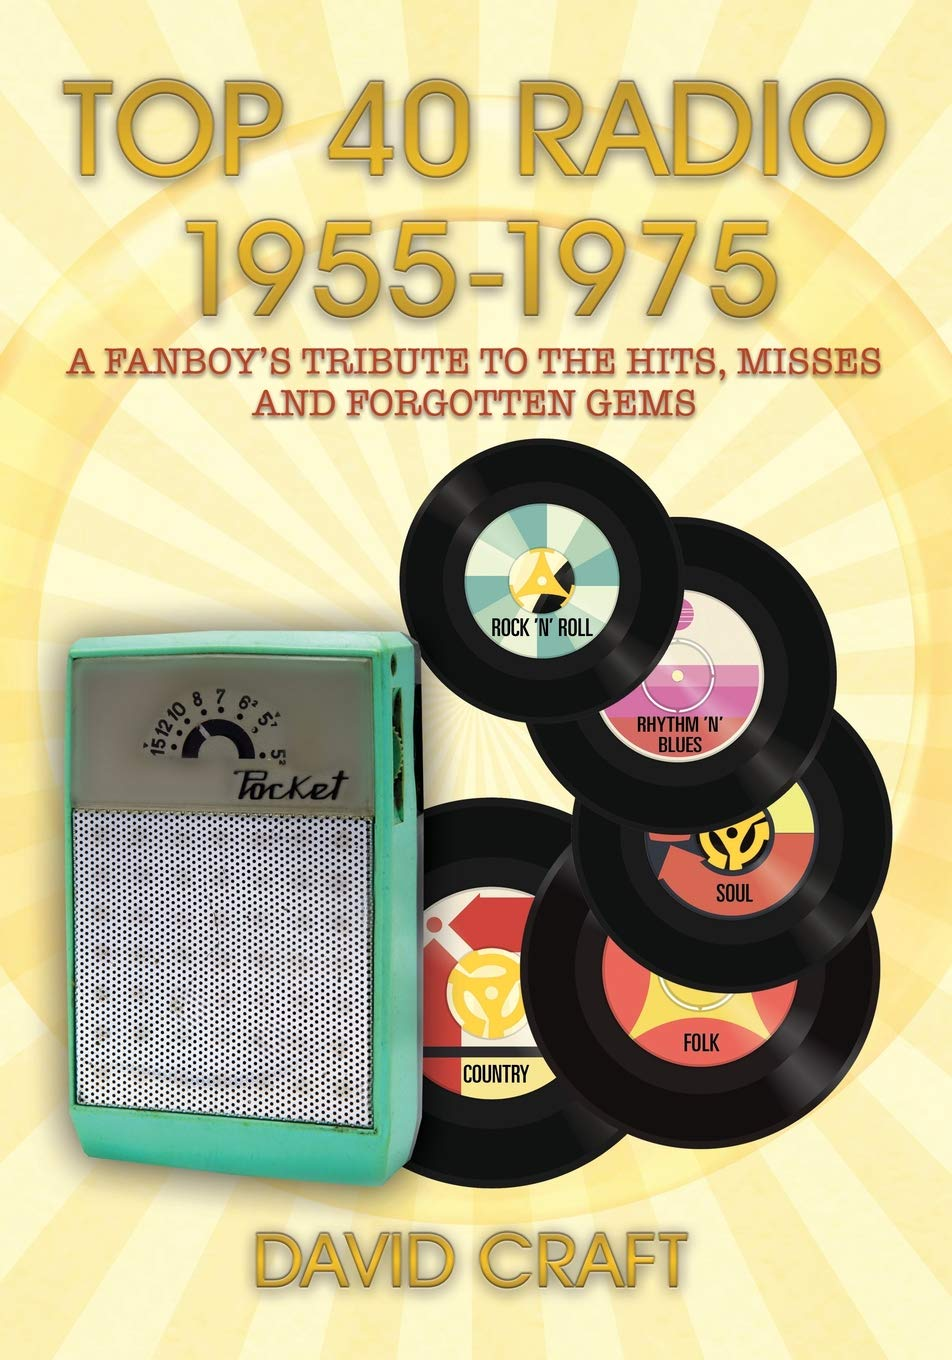 Top 40 Radio 1955-1975: A Fanboy's Tribute to the Hits, Misses and